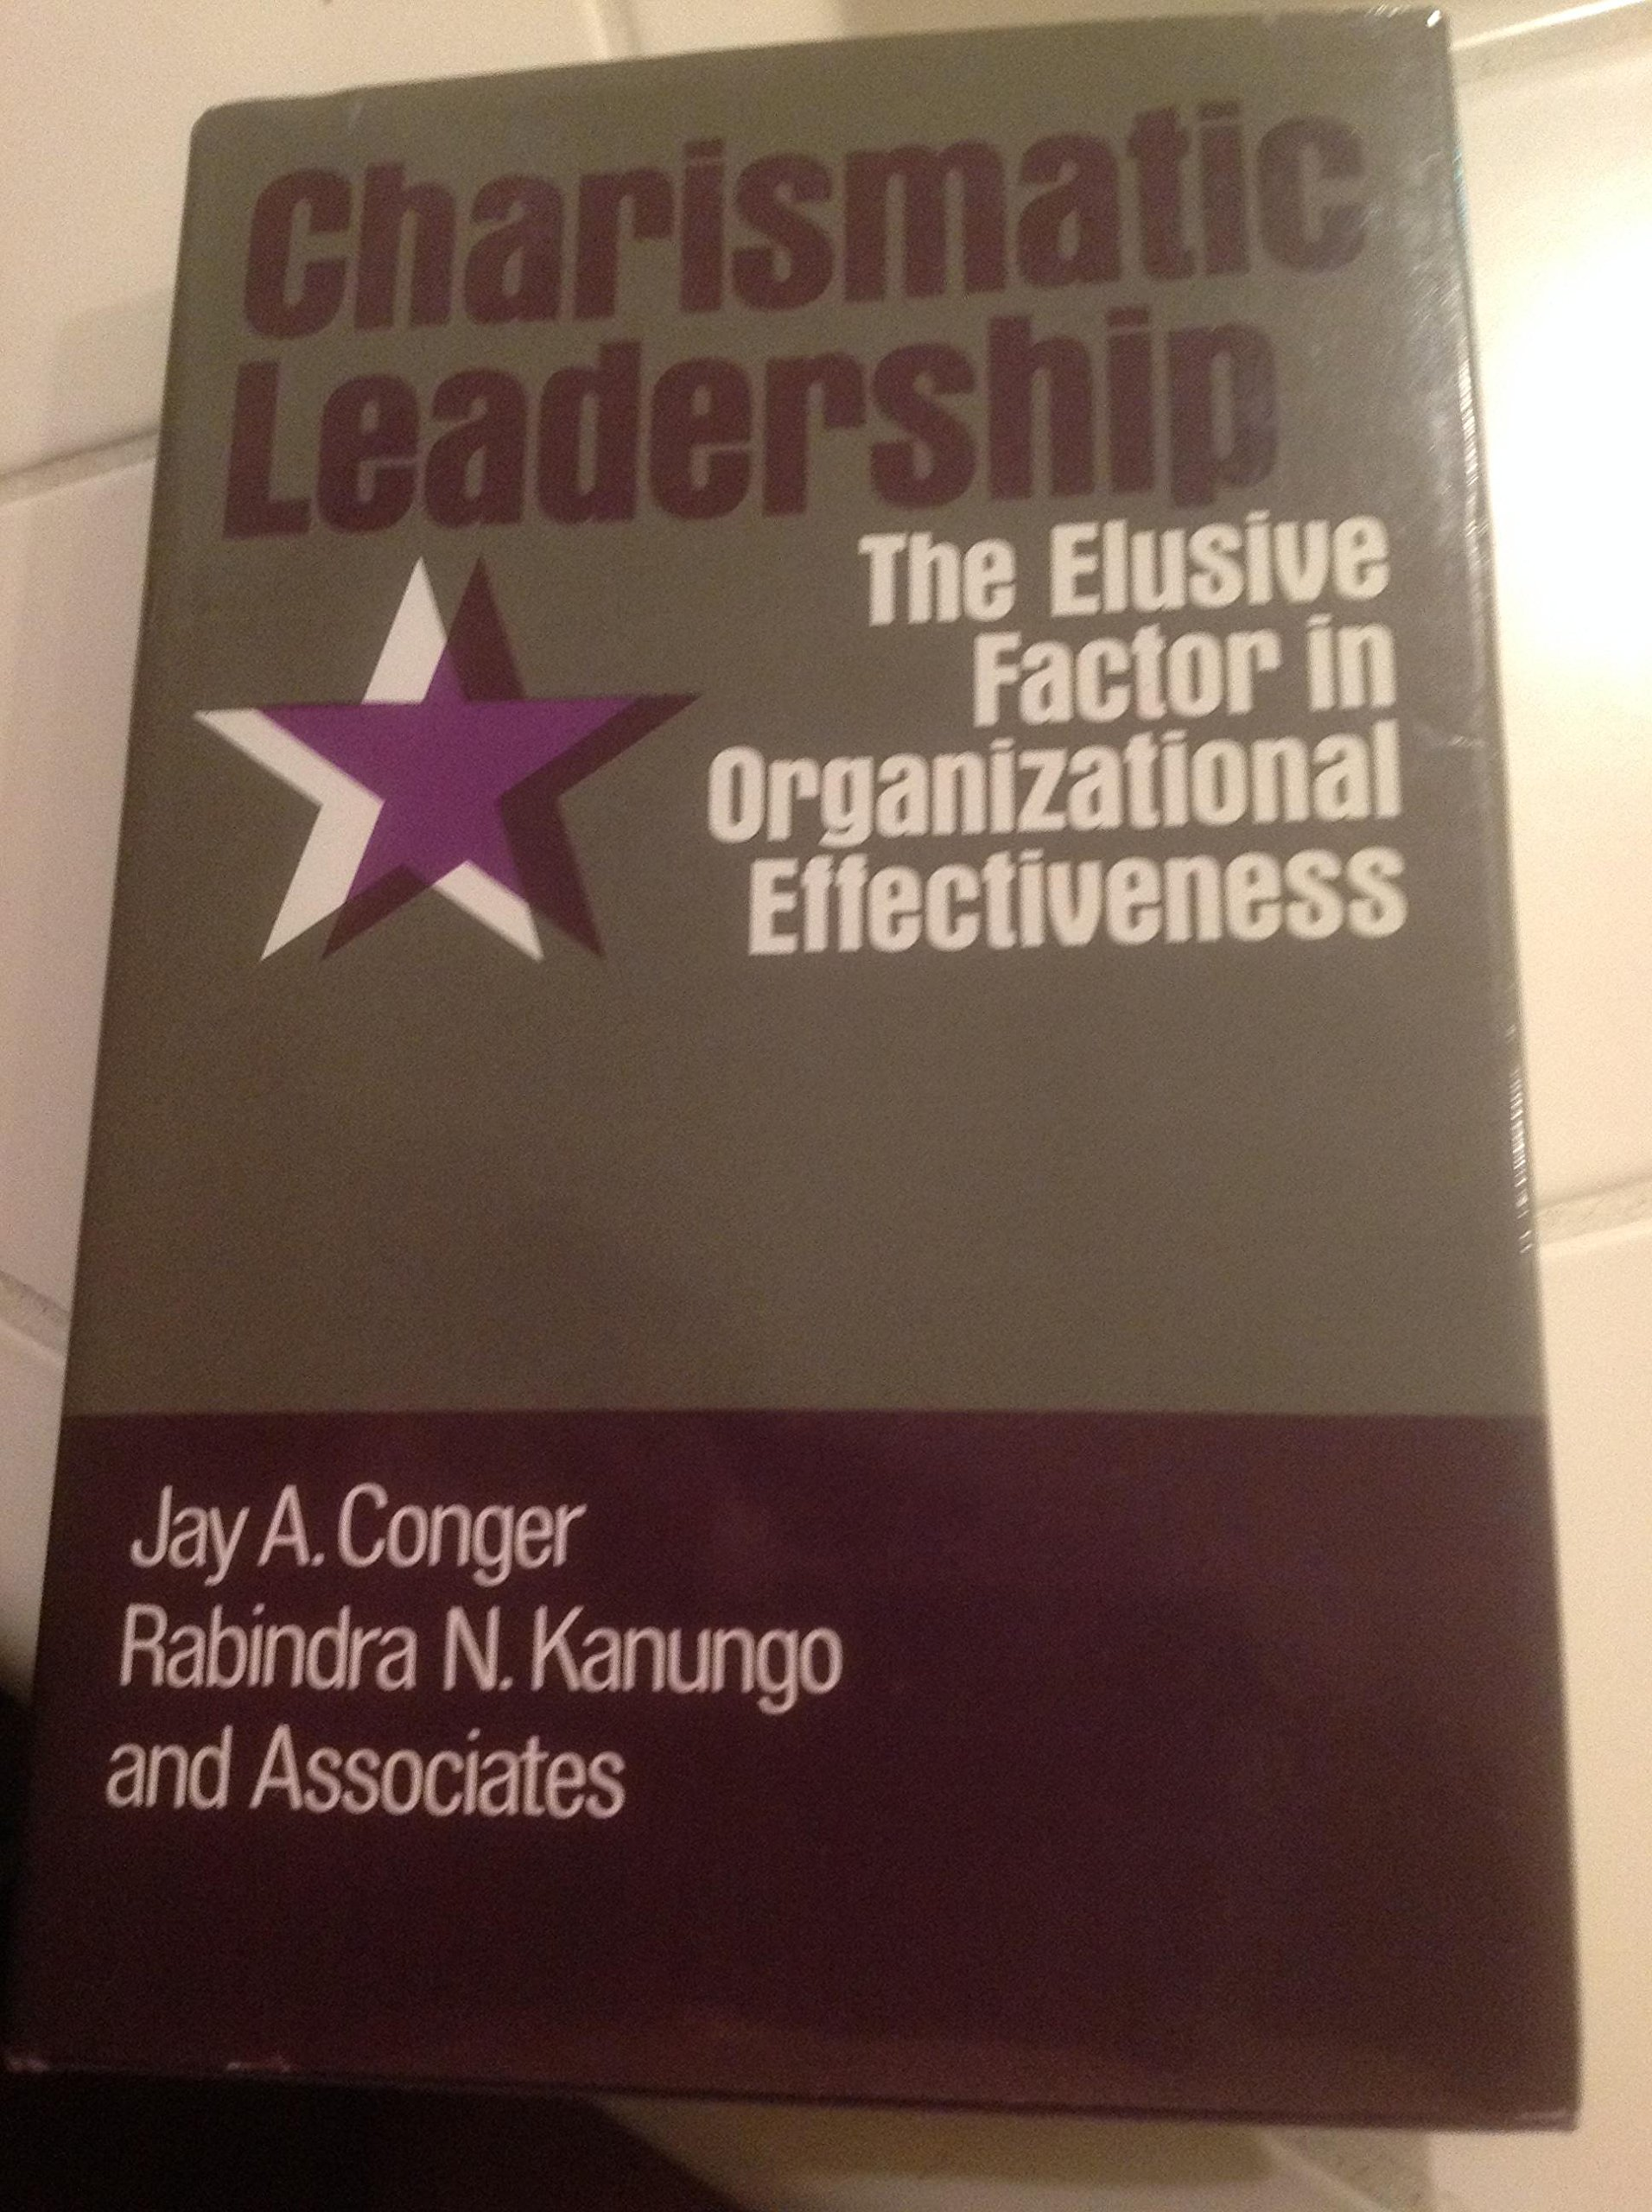 Charismatic leadership the elusive factor in organizational charismatic leadership the elusive factor in organizational effectiveness the jossey bass management series jay a conger rabindra n kanungo fandeluxe Images